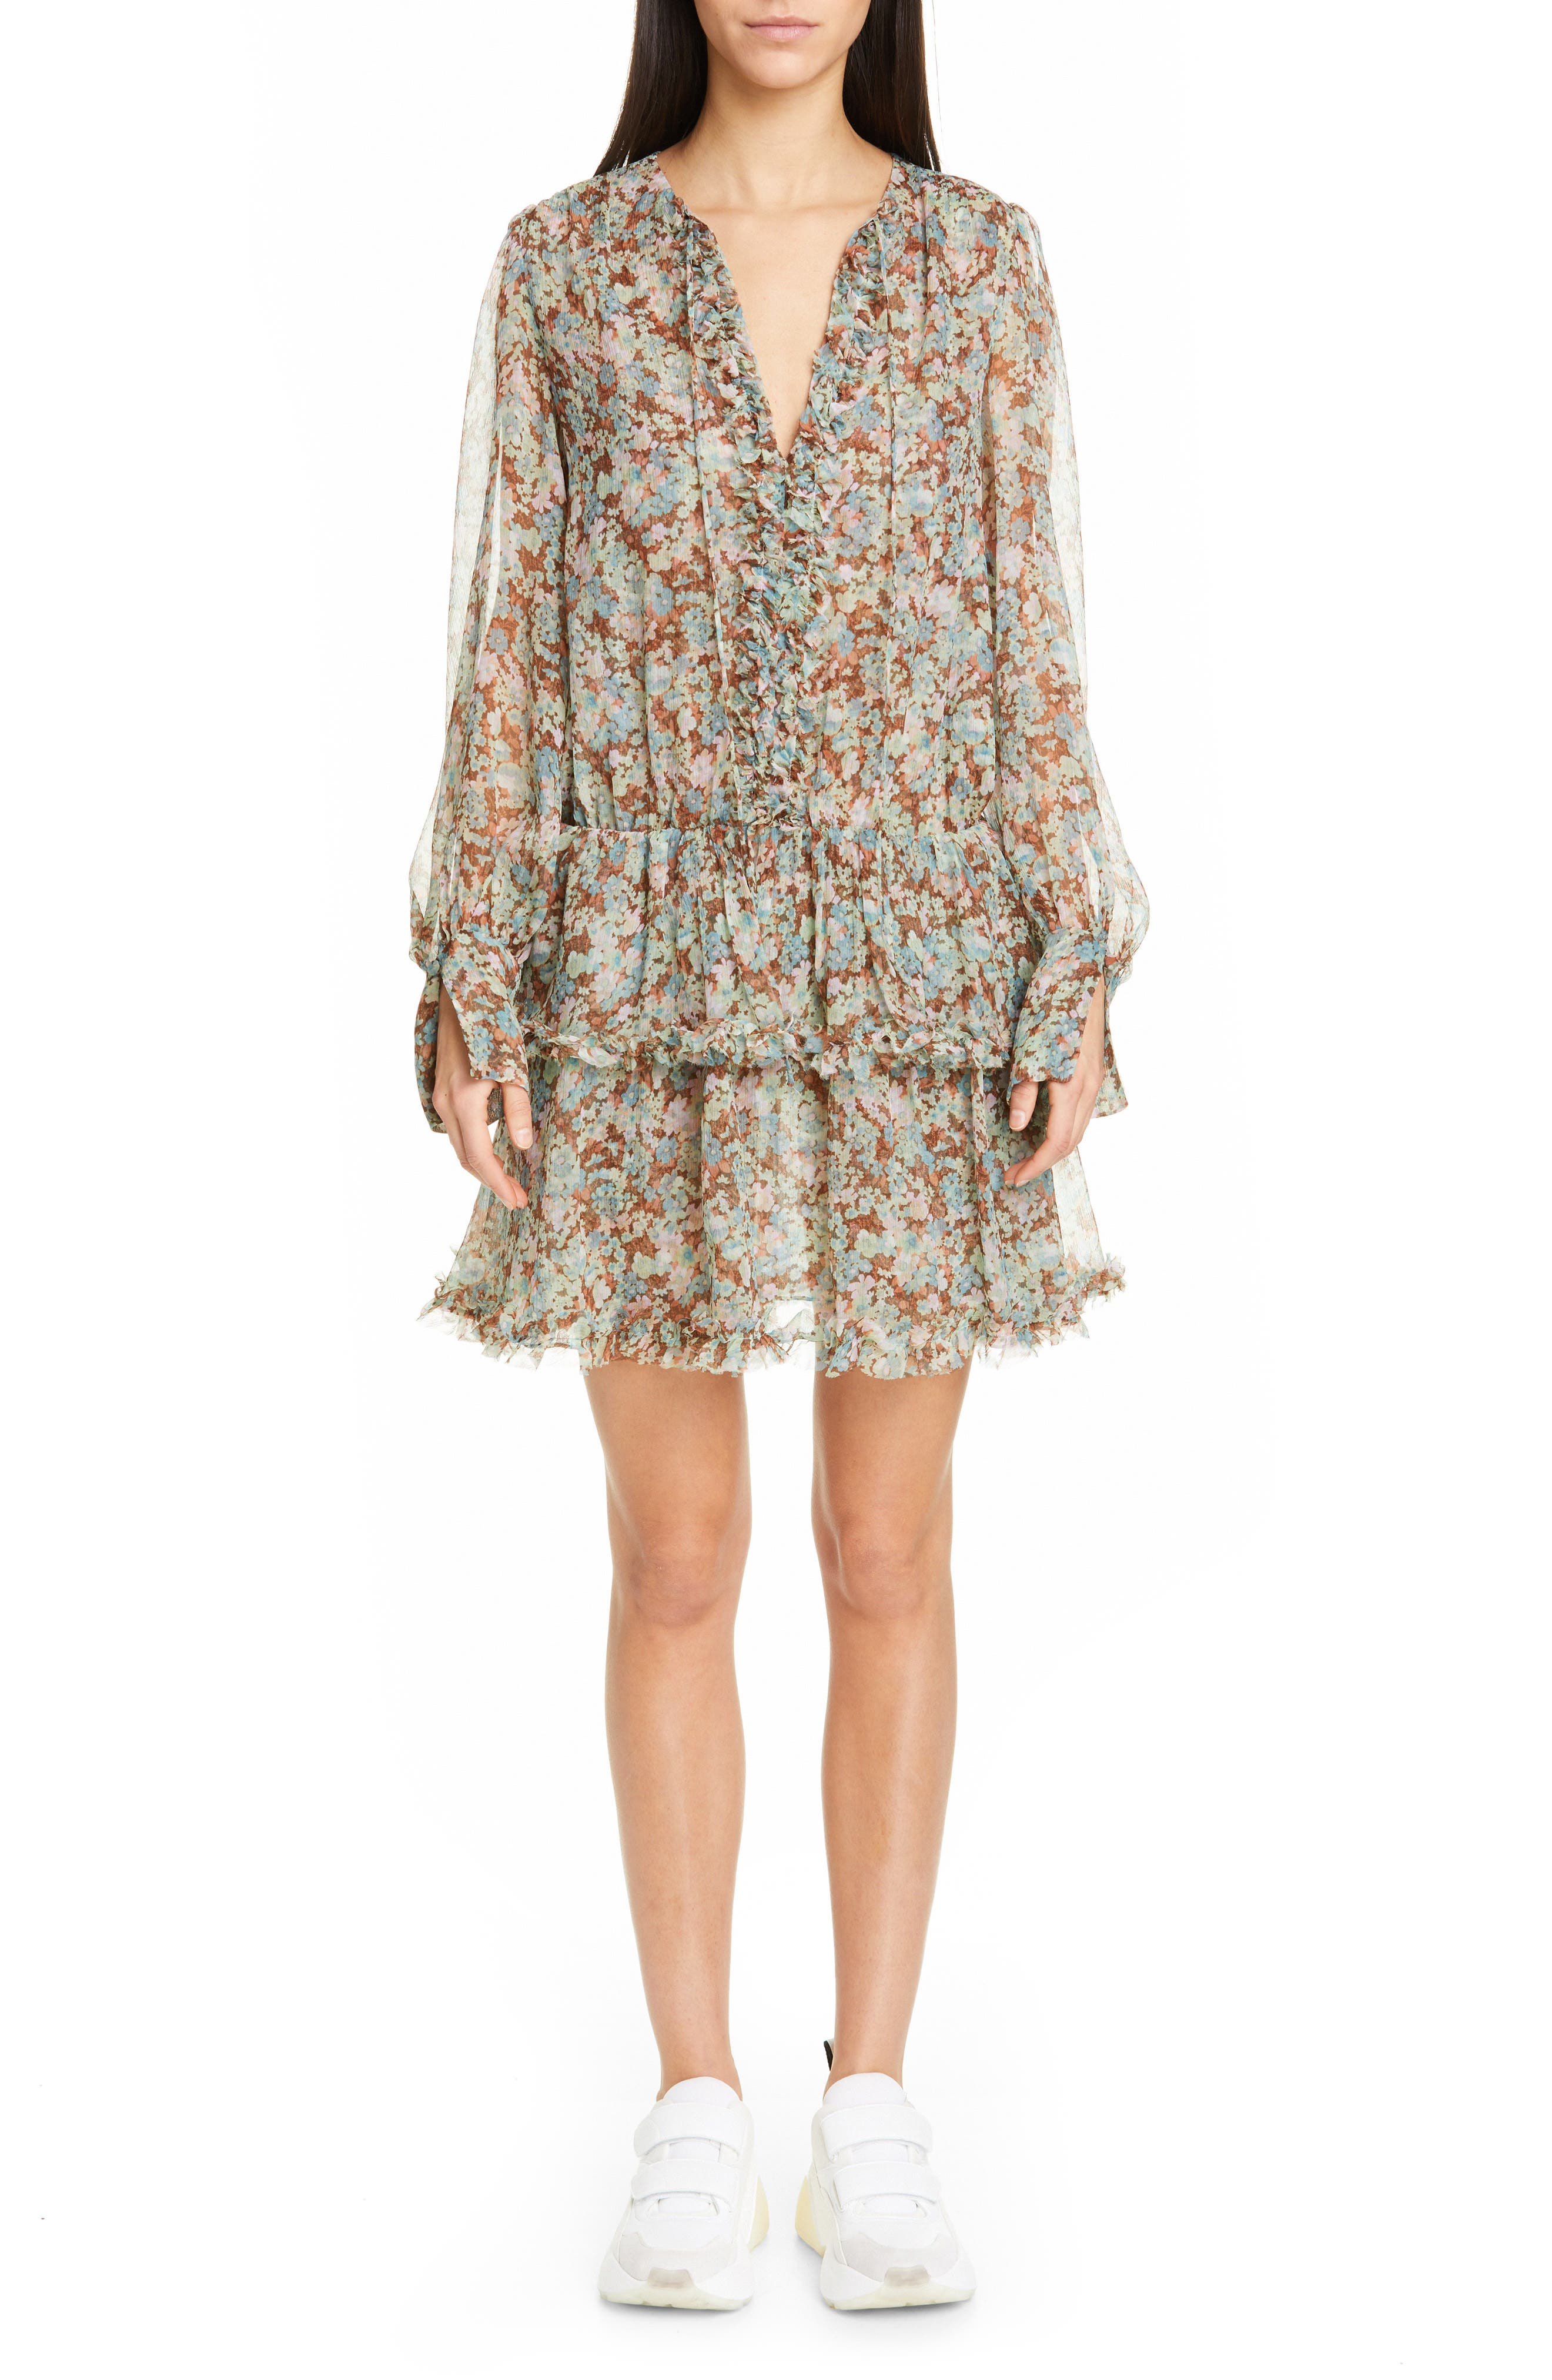 Stella Mccartney Meadow Floral Print Silk Dress, 48 IT - Green